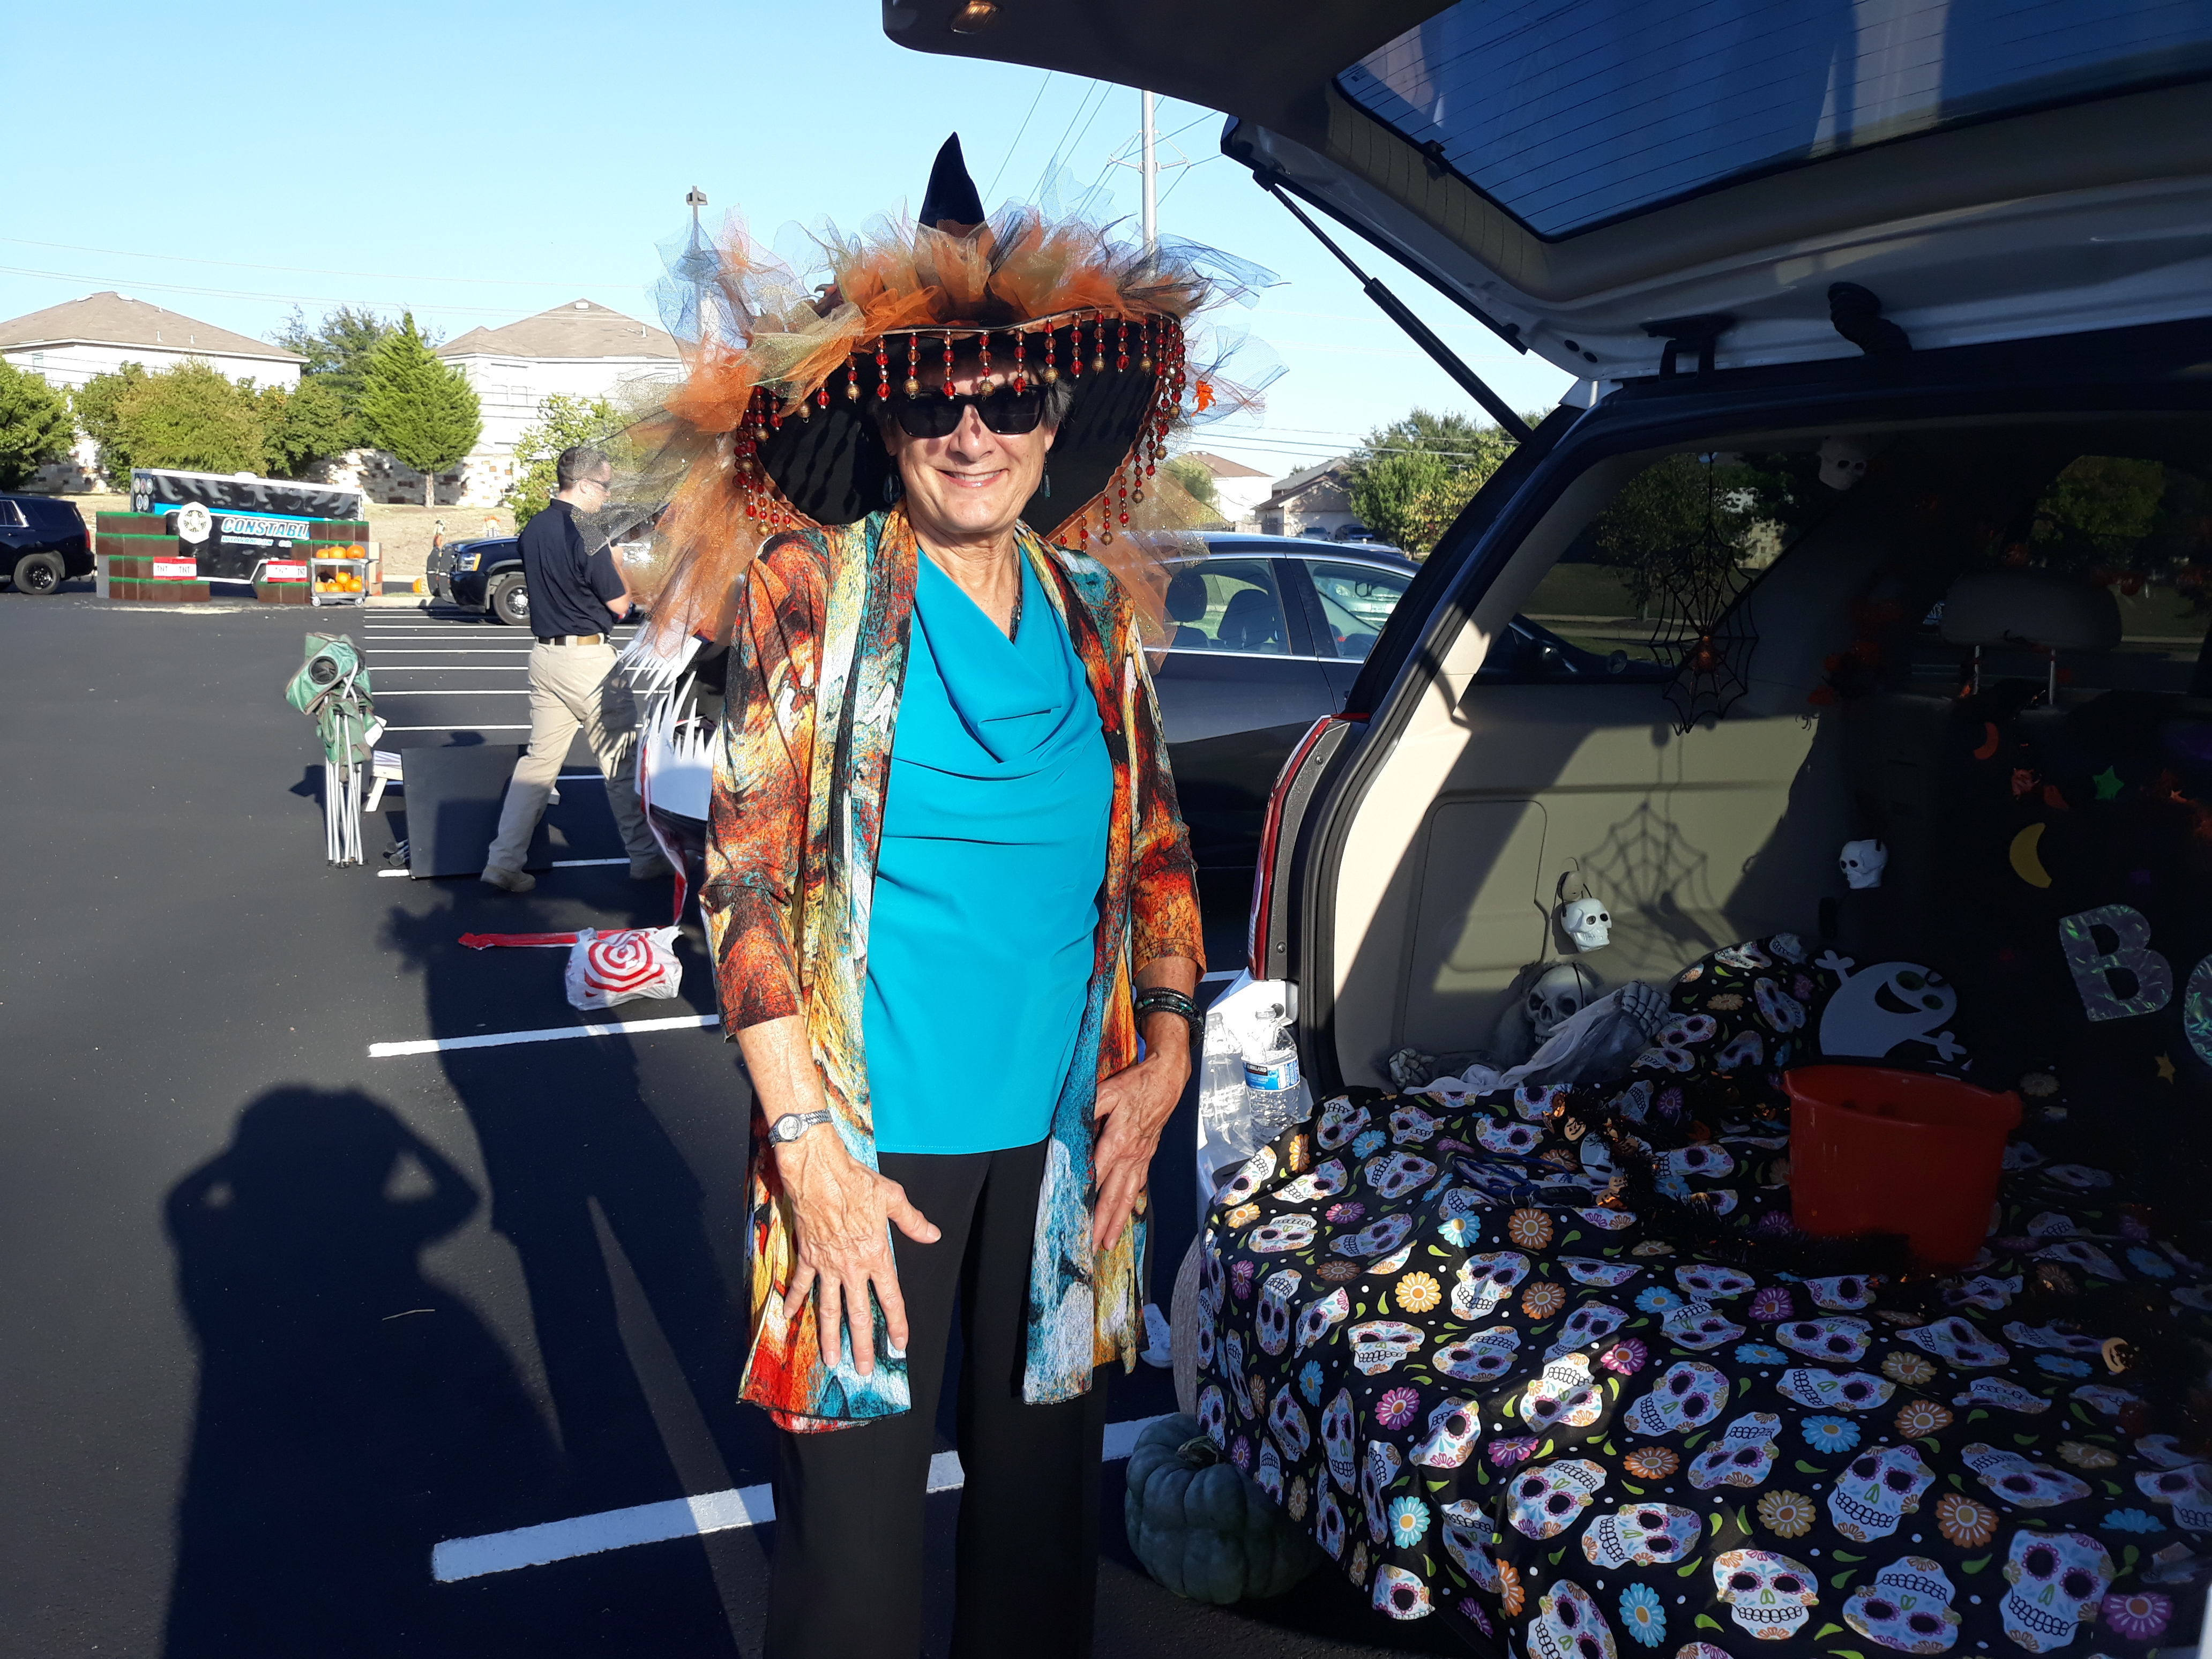 Commissioner Cook is wearing her richly decorated witch's hat from a previous event and is standing next to staffer Doris Sanchez's decorated vehicle.